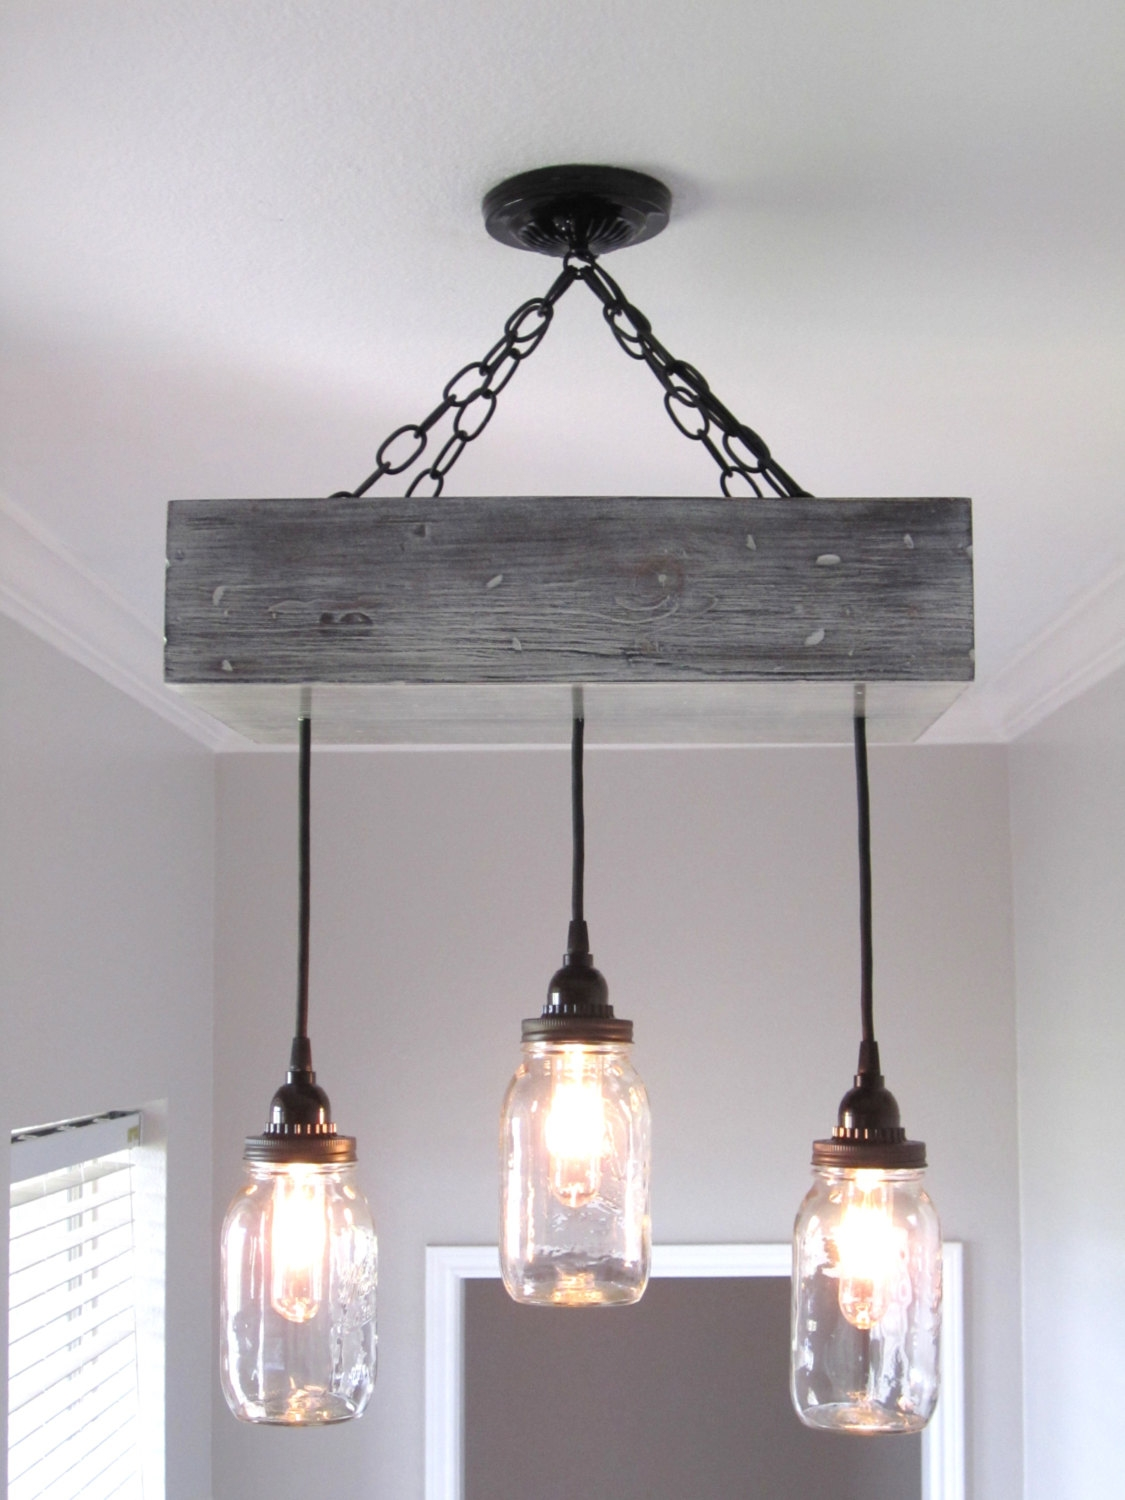 Rustic Mason Jar Chandelier Lighting Von Outofthewdworkdesign For Small Rustic Chandeliers (Photo 9 of 25)